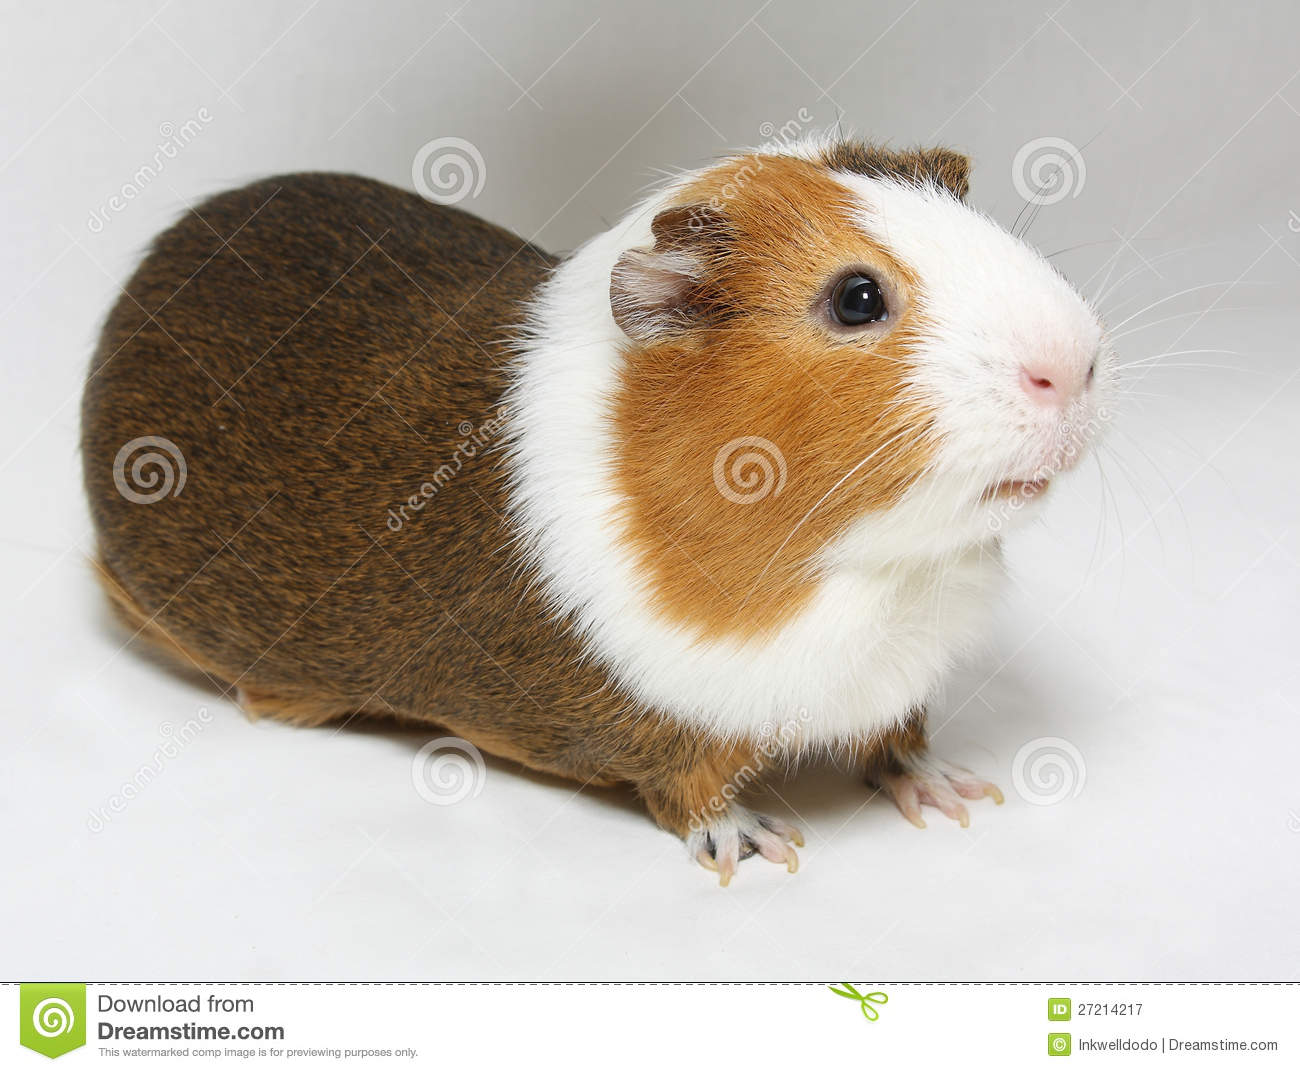 Guinea pig royalty free stock photography image 27214217 for Guinea pig pictures free